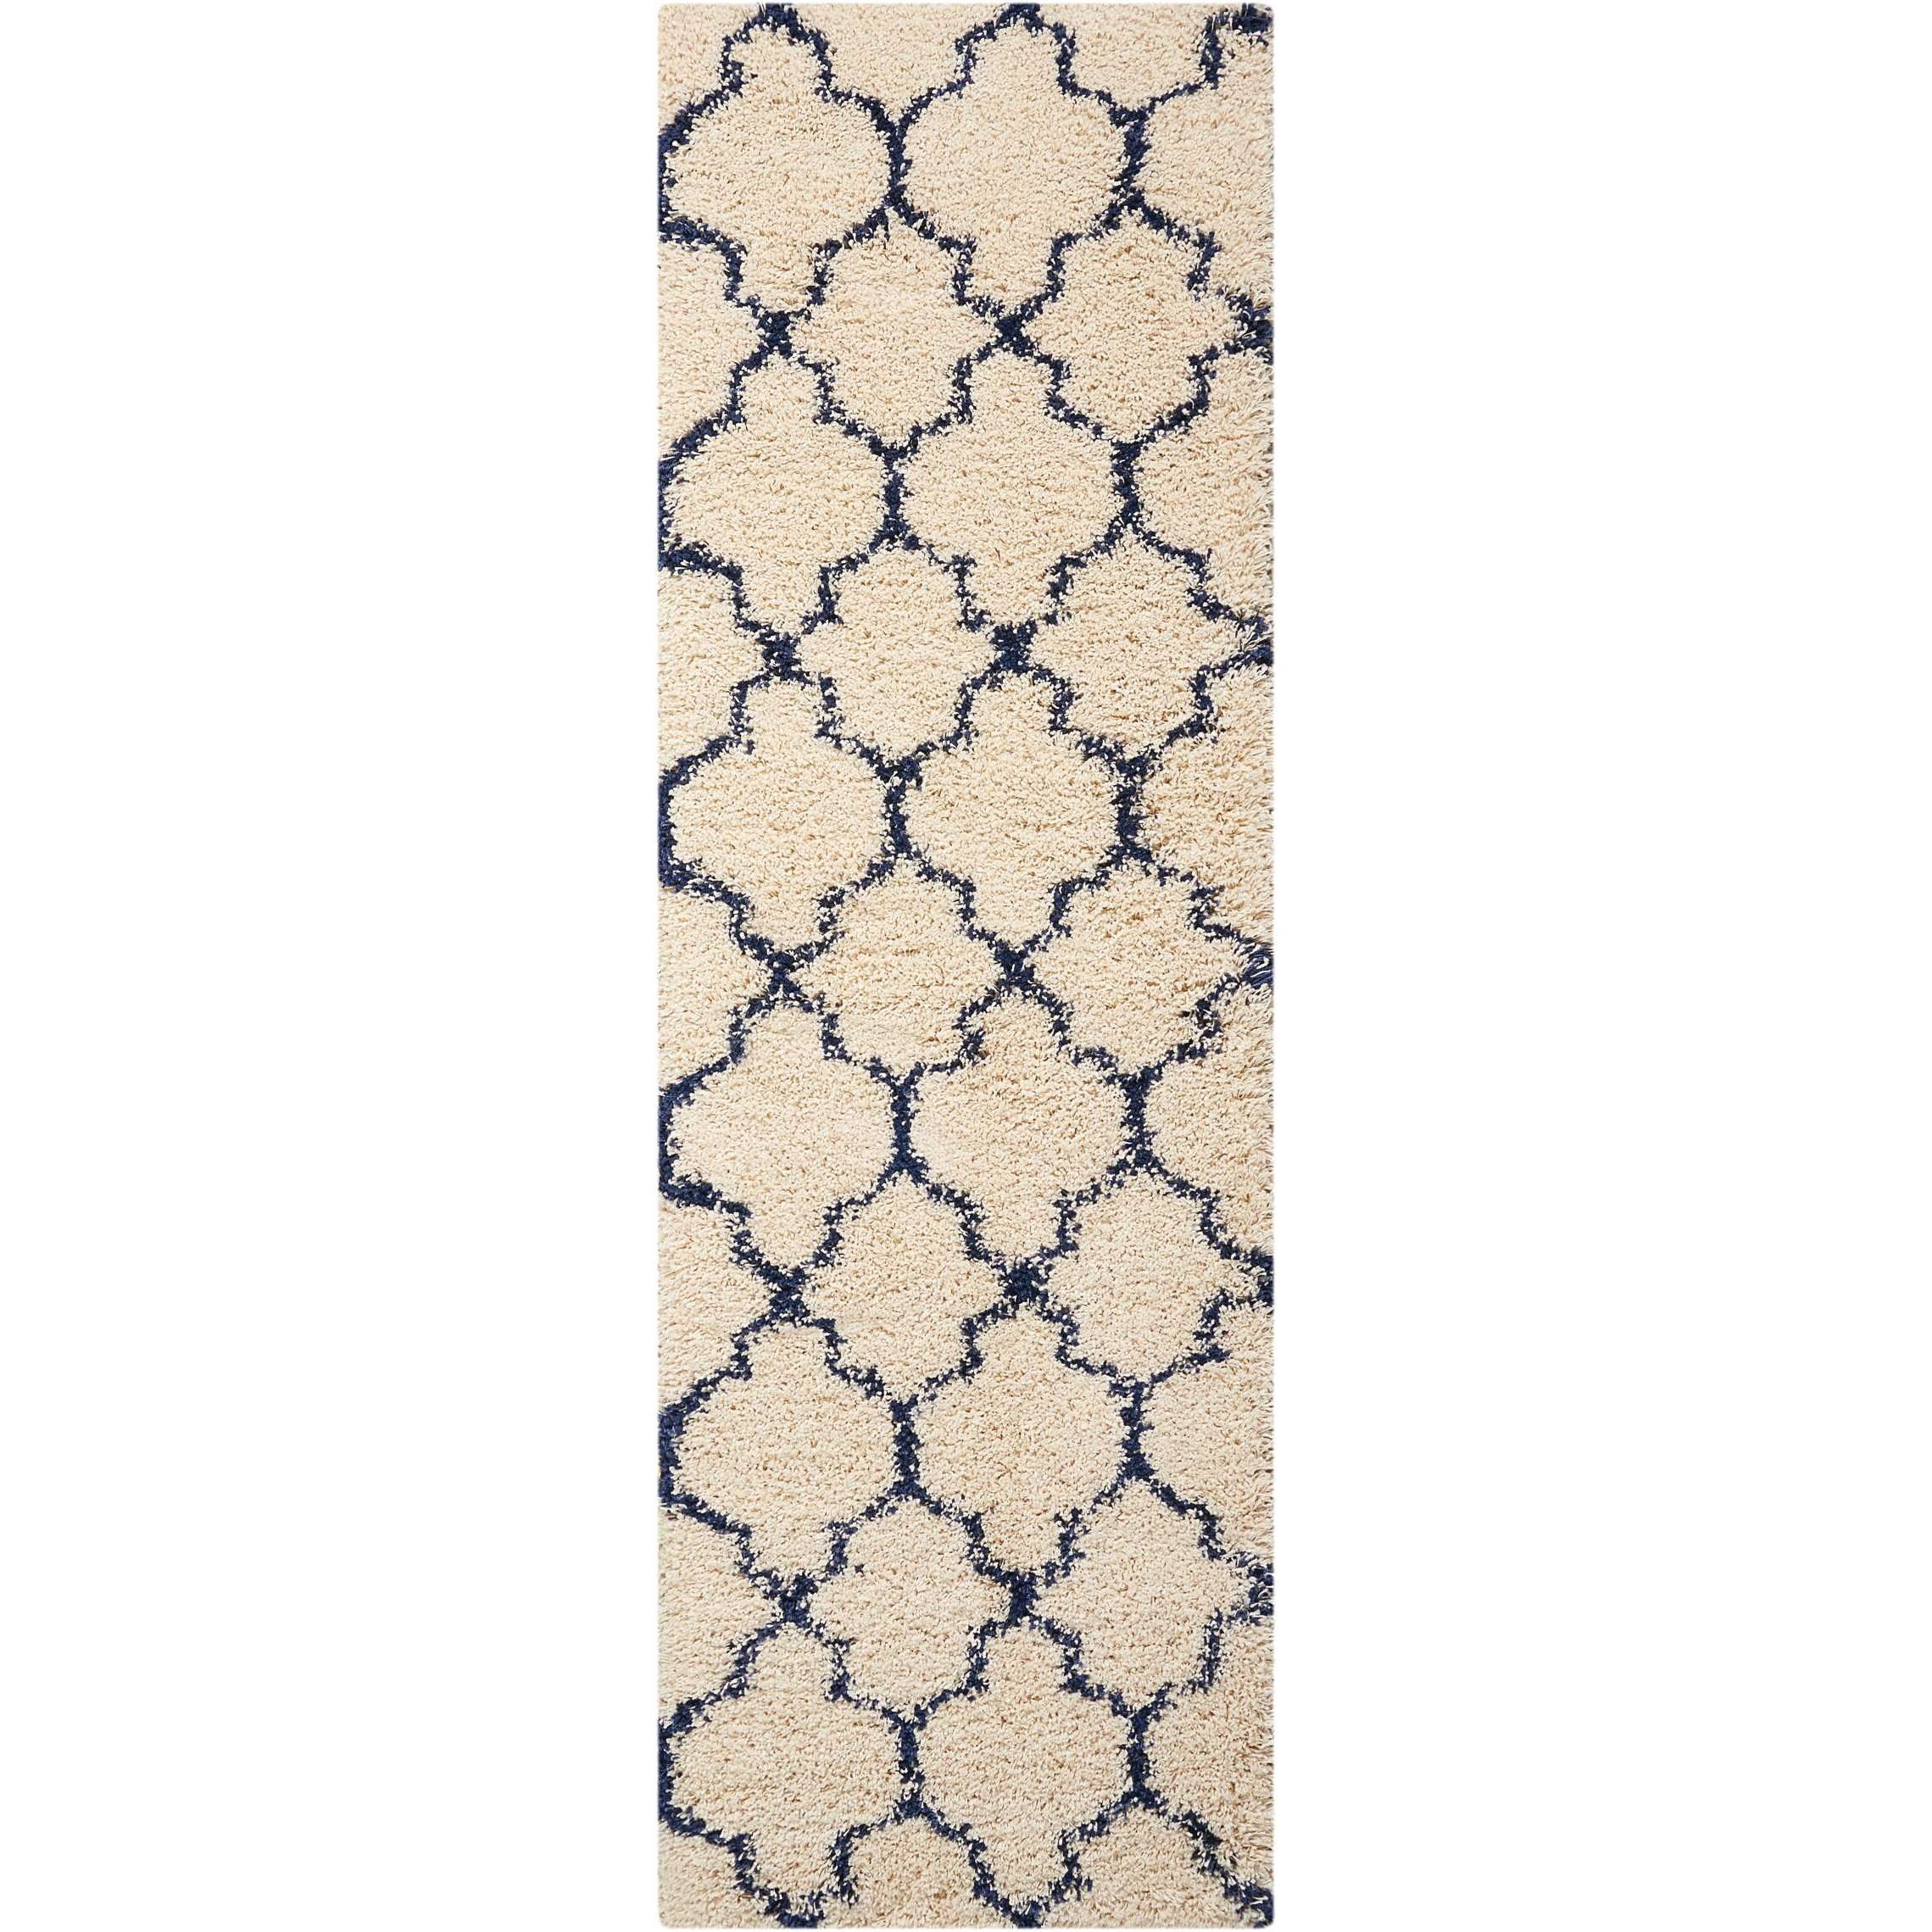 Amore Amore AMOR2 Blue and Ivory 8' Runner  Hallwa by Nourison at Home Collections Furniture